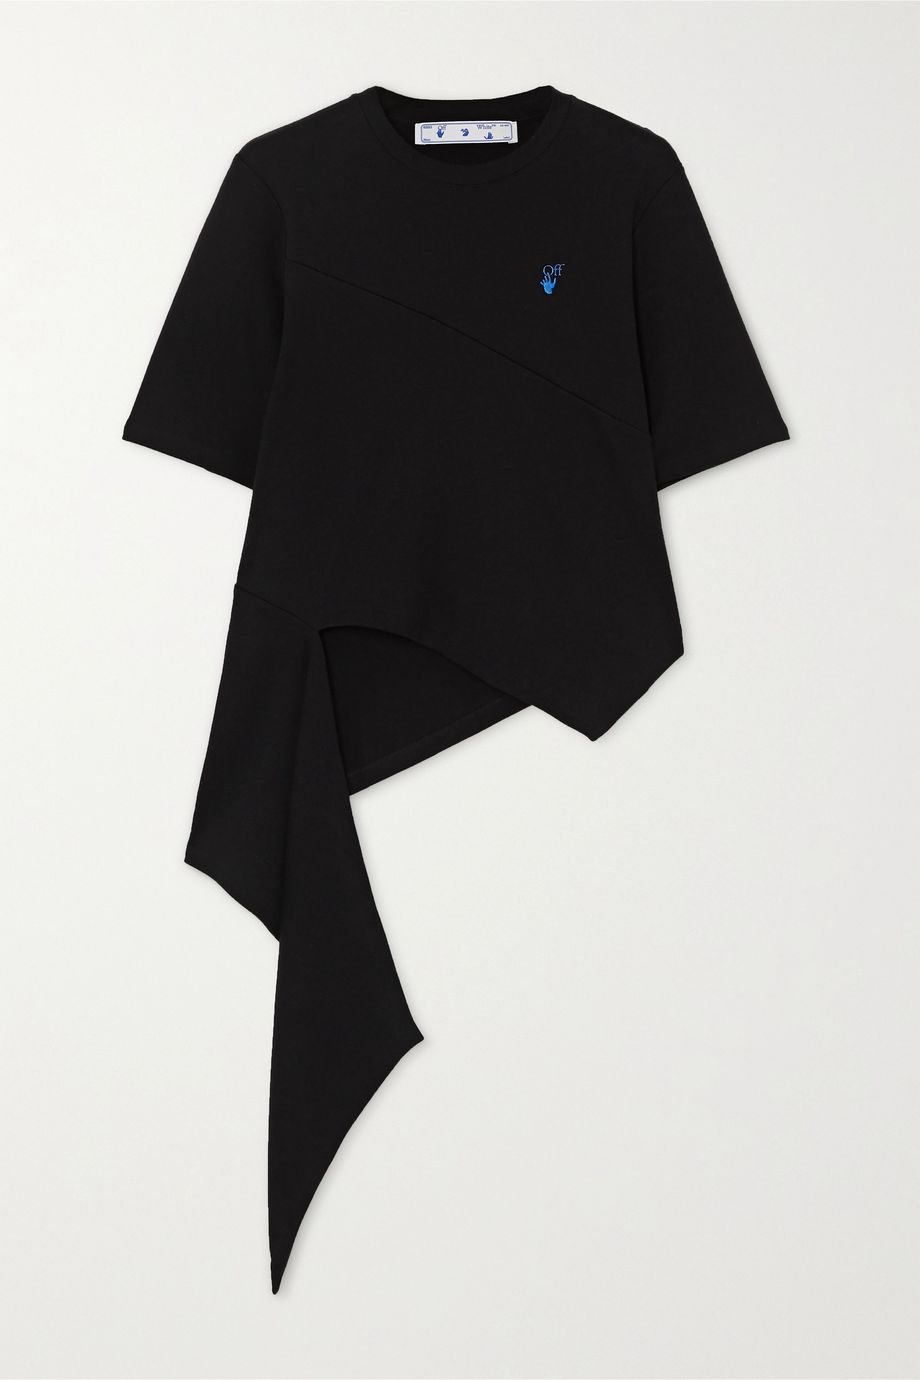 Off-White Asymmetric embroidered cotton-jersey T-shirt